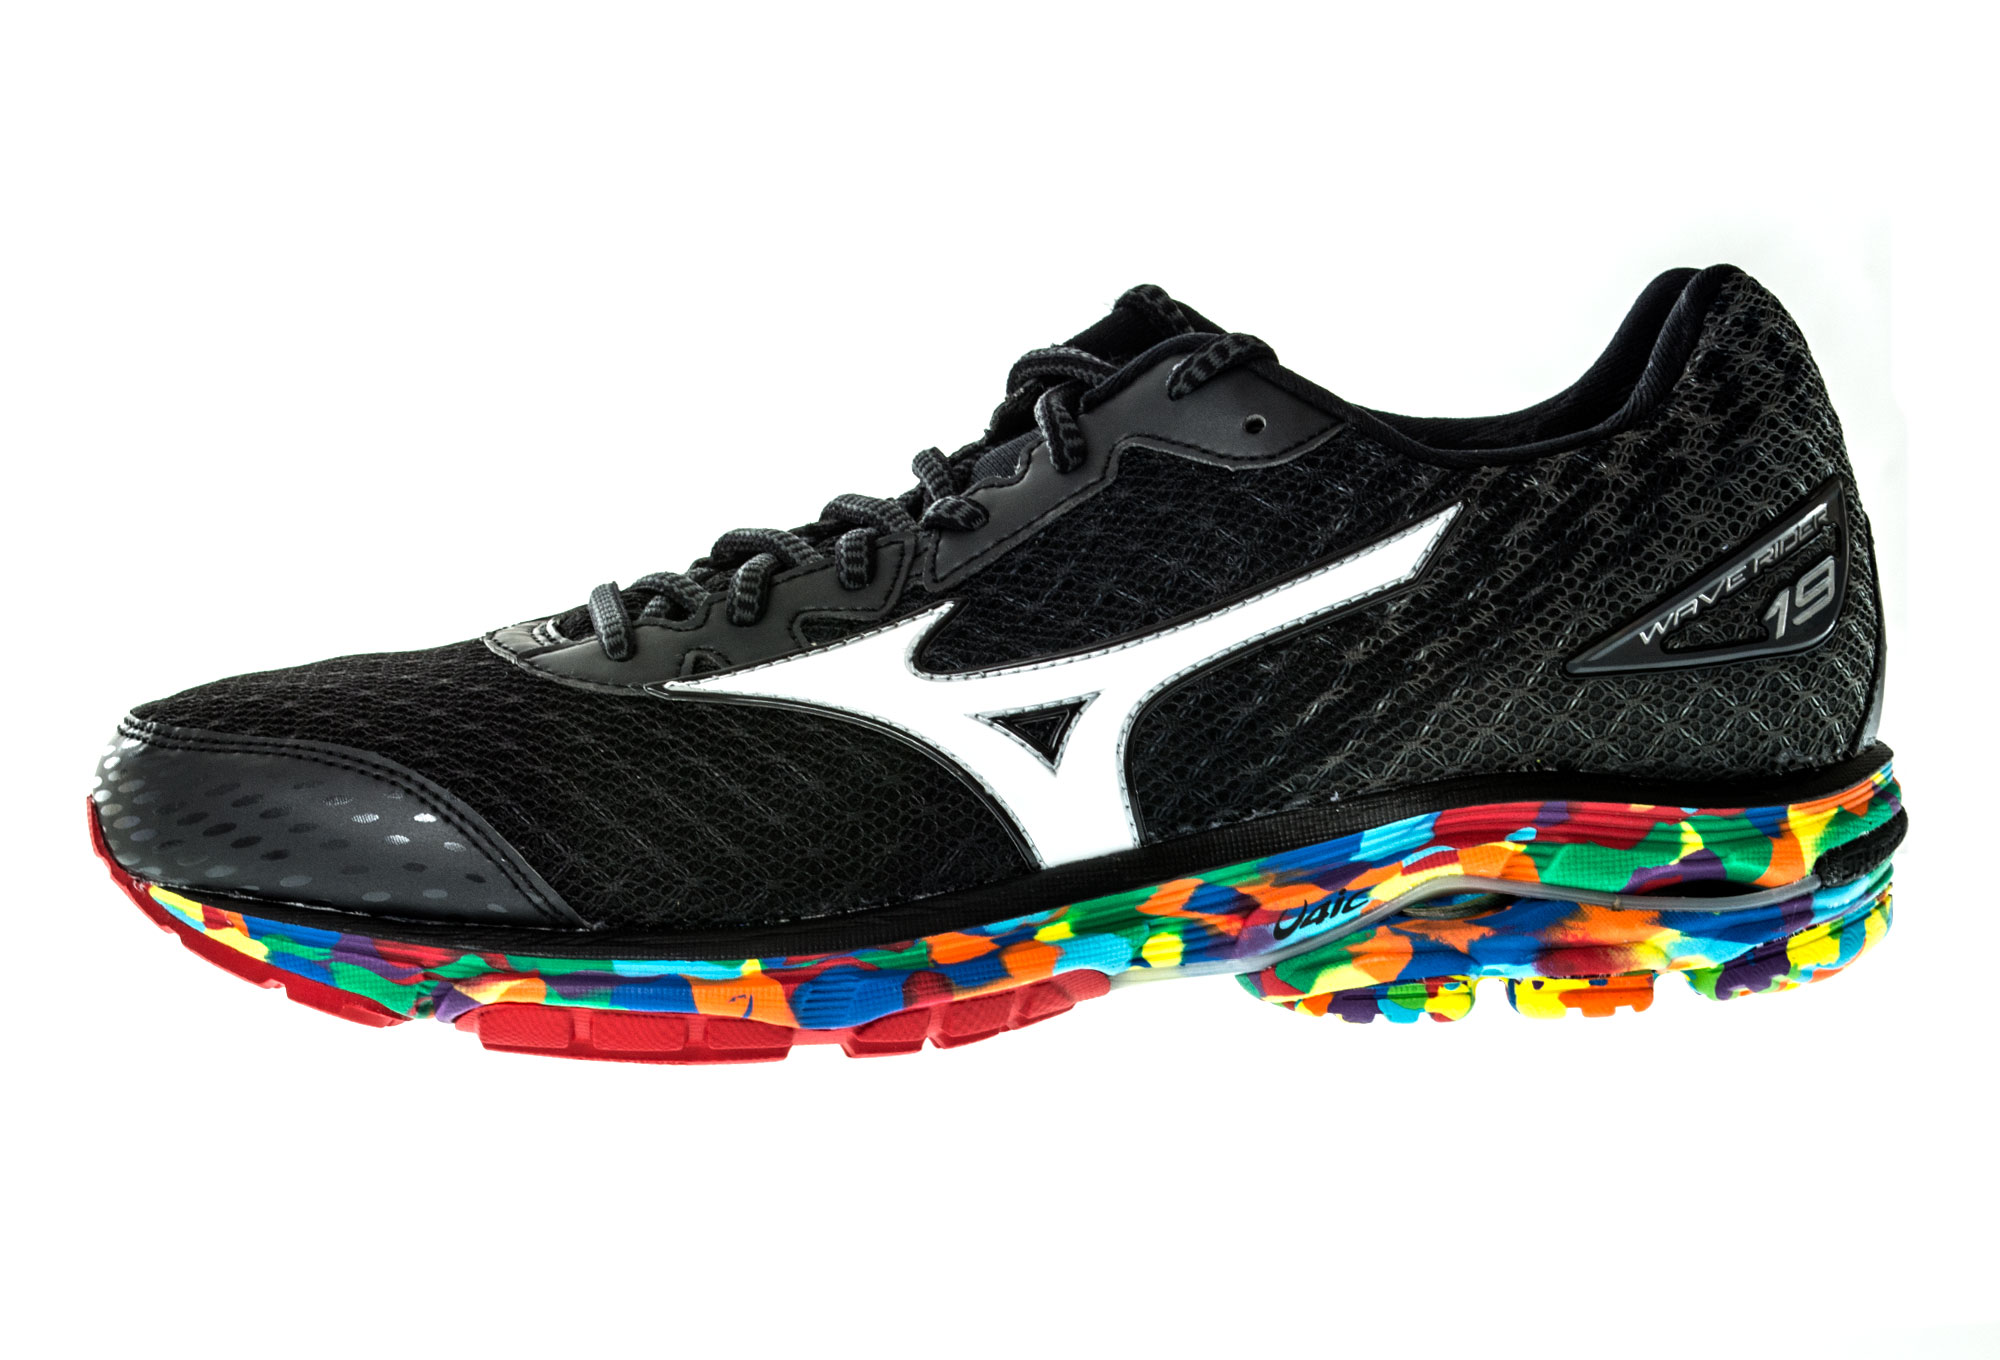 mizuno shoes wave rider 19 black multi color men. Black Bedroom Furniture Sets. Home Design Ideas